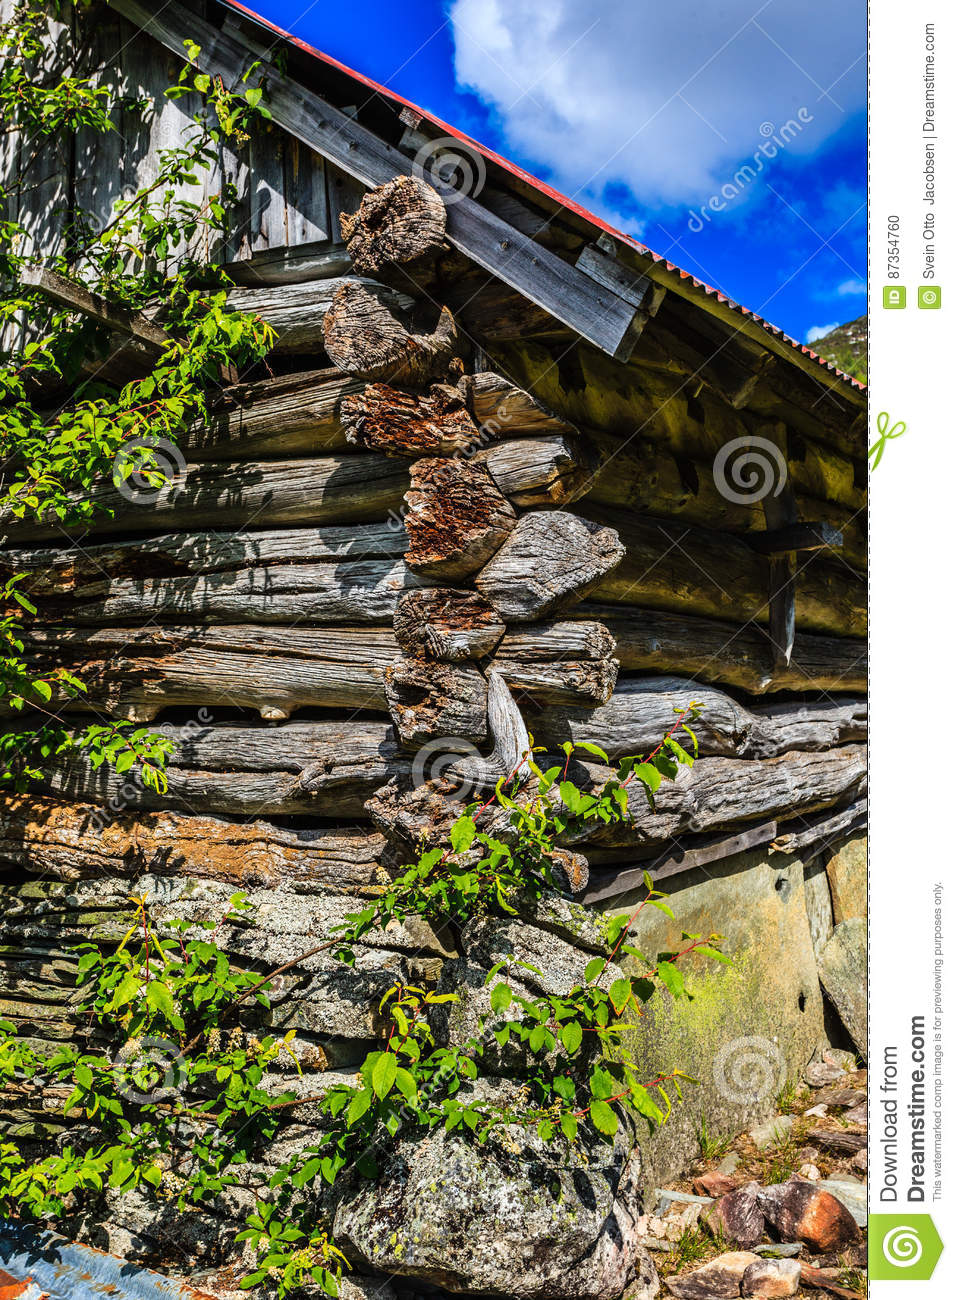 Antique Notched Trowels : An old building of notched seals in beautiful